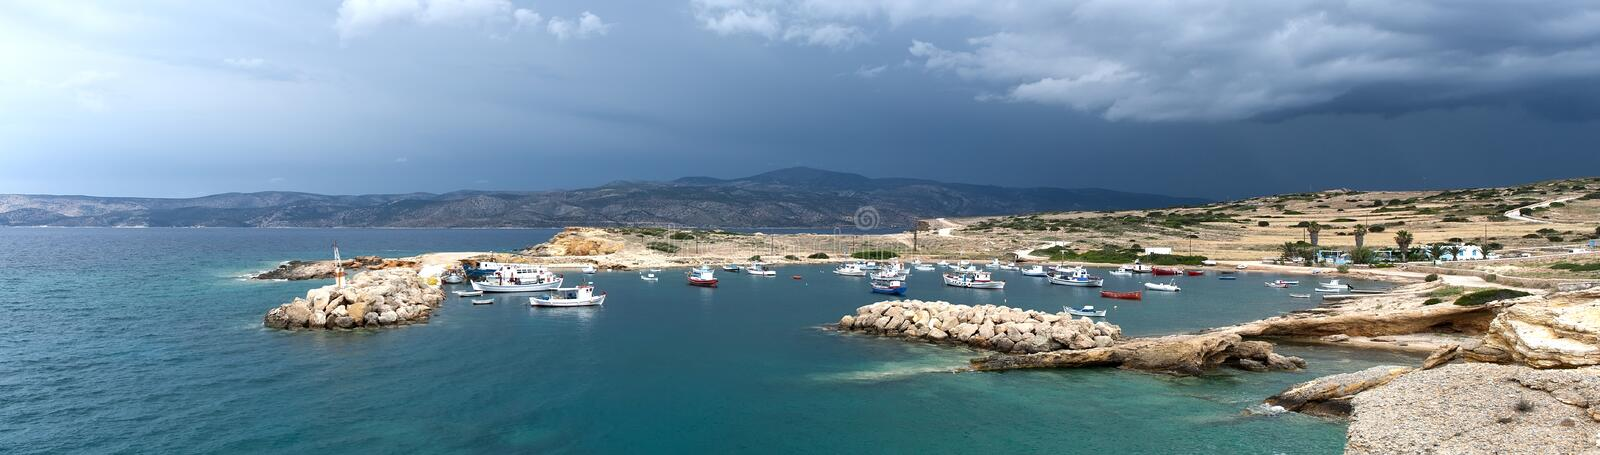 View on fishing port in Koufonissi island royalty free stock photography